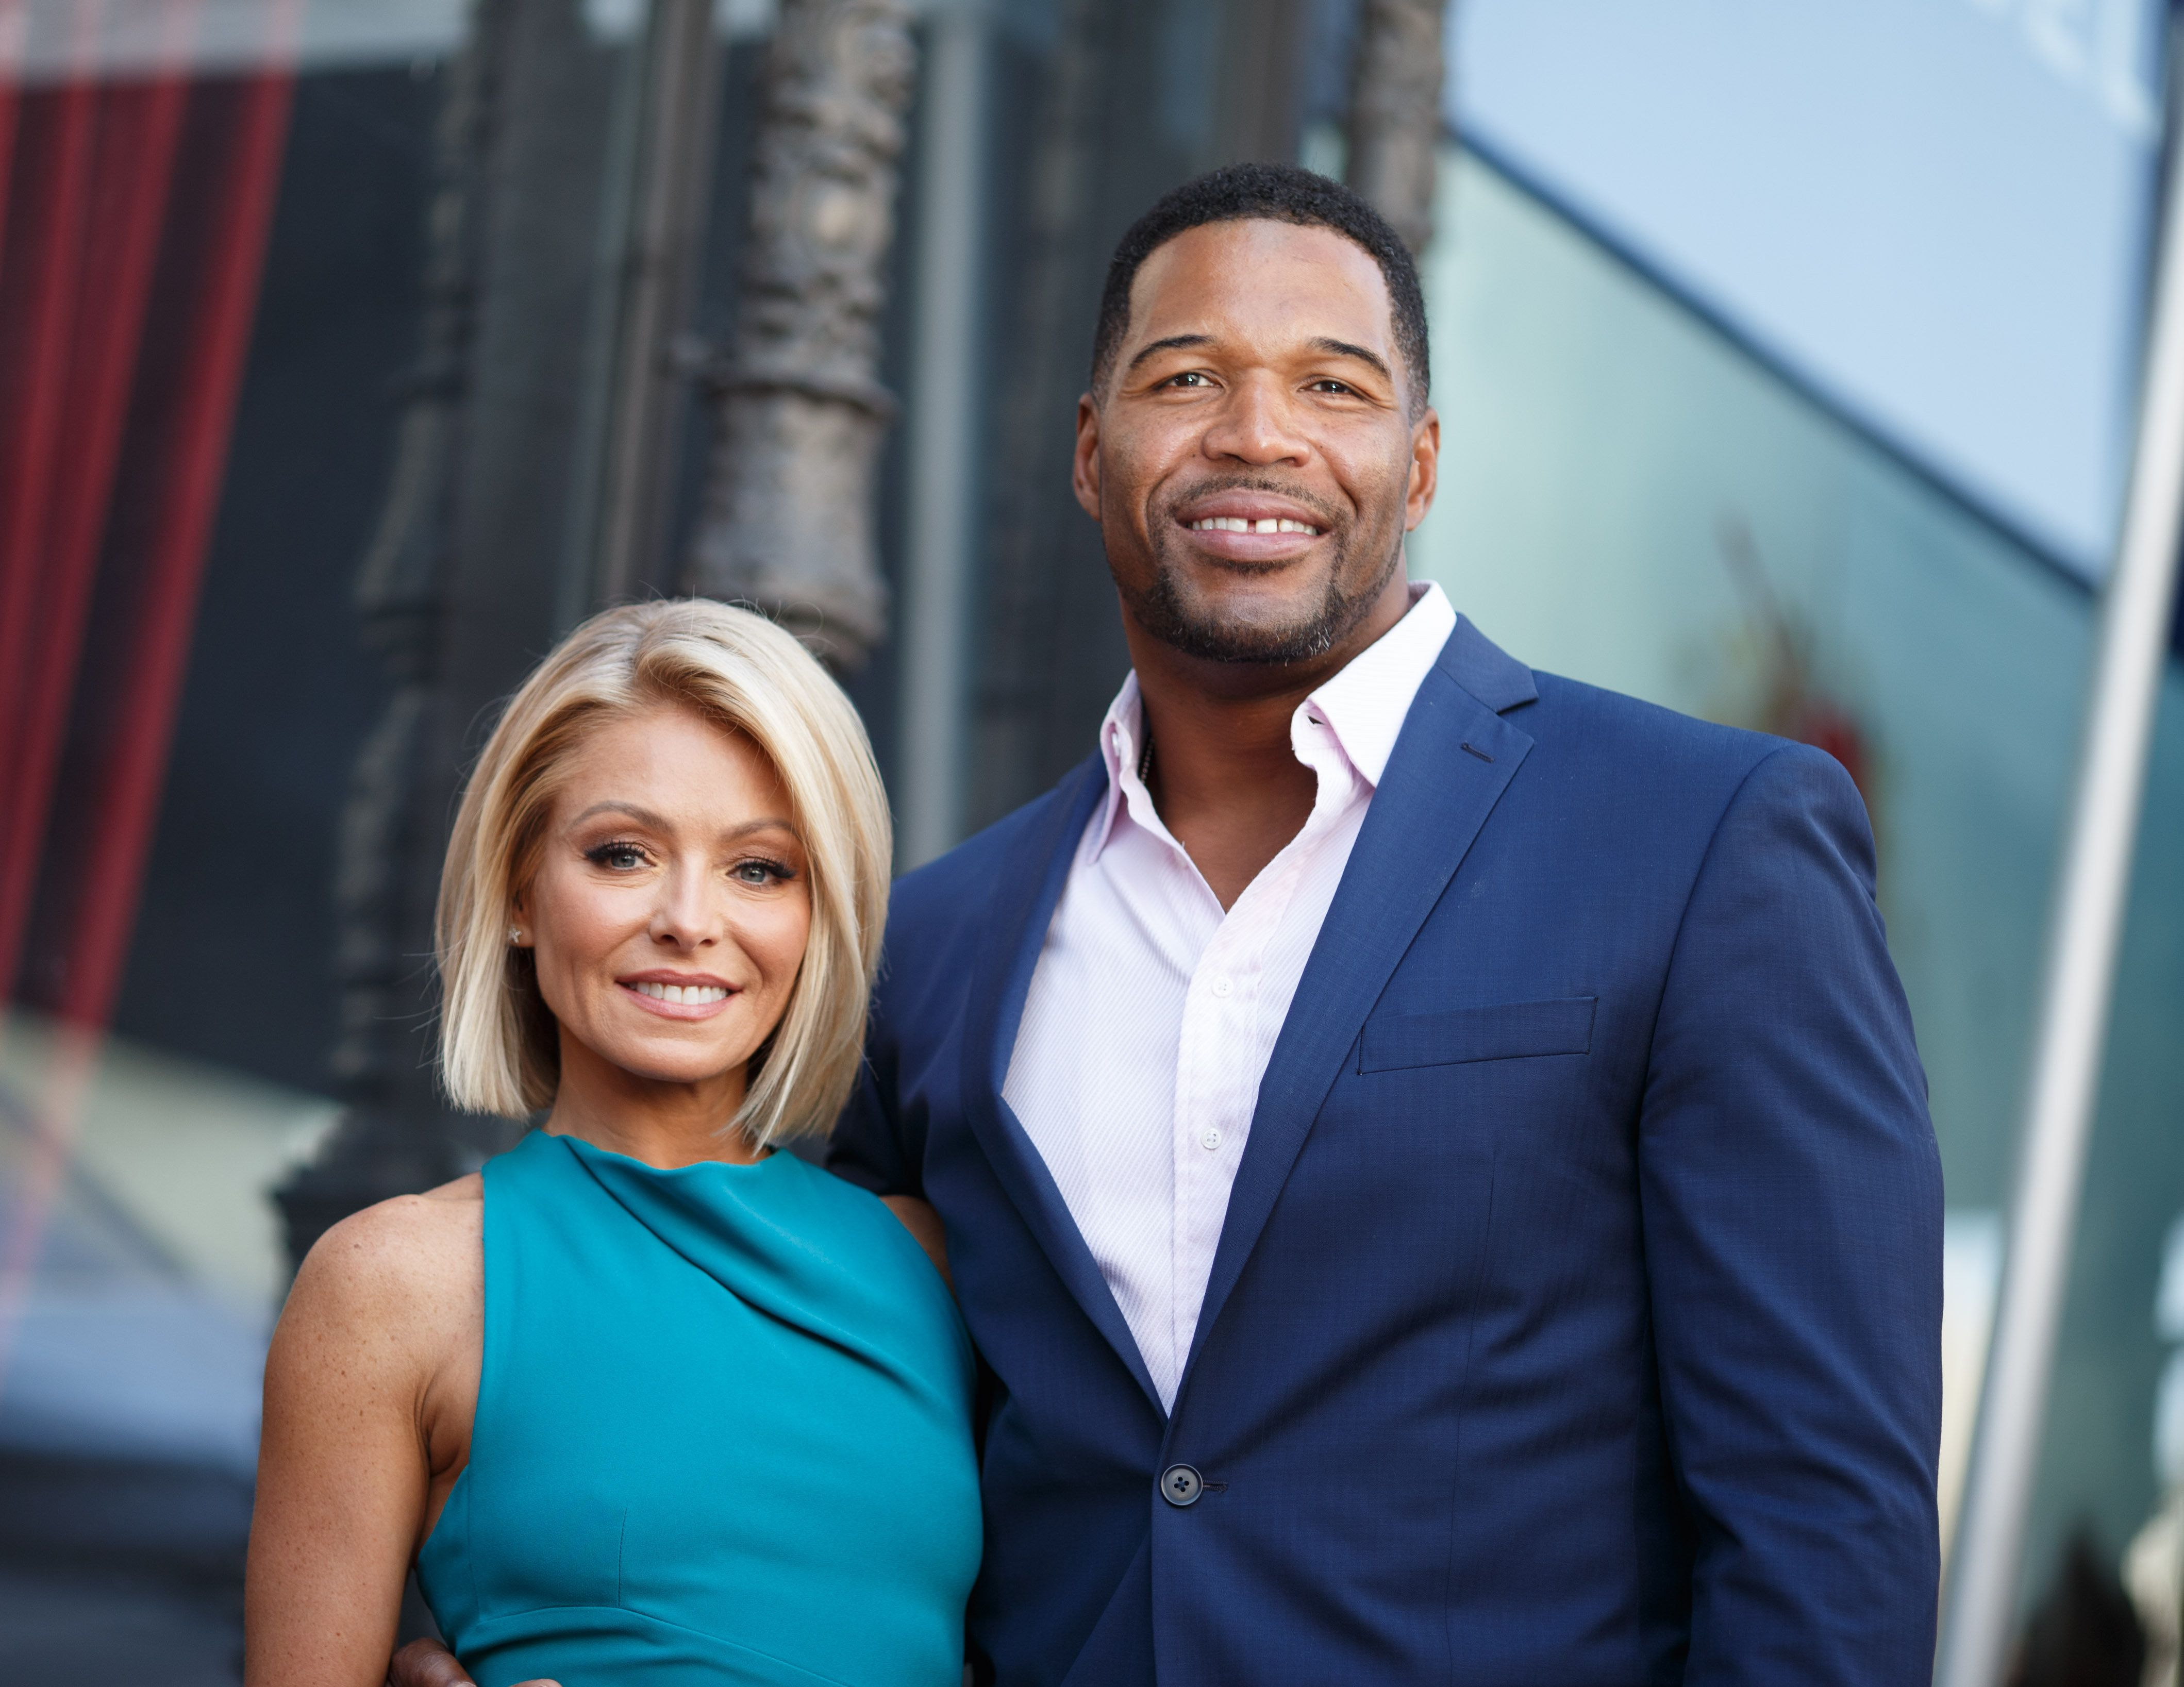 HOLLYWOOD, CA - OCTOBER 12:  Television host Kelly Ripa (L) and Michael Strahan attend the Hollywood Walk of Fame on October 12, 2015 in Hollywood, California.  (Photo by Mark Davis/Getty Images)